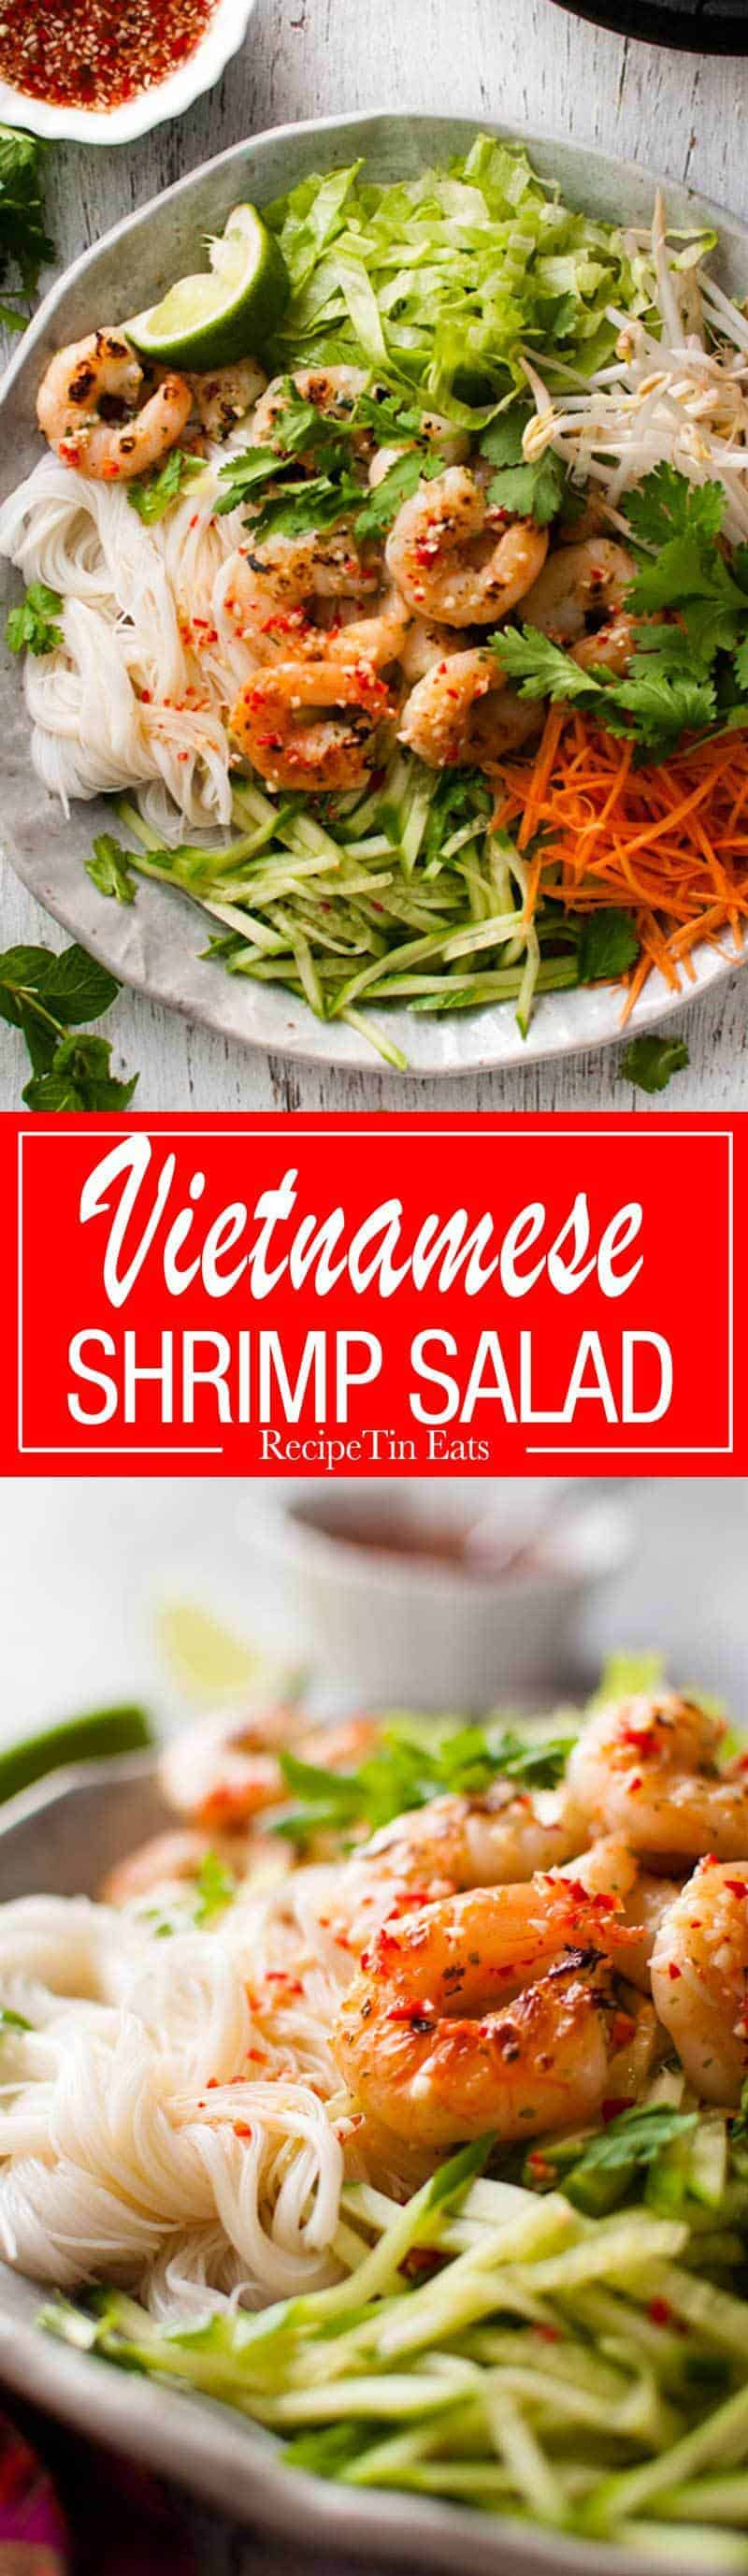 Vietnamese Shrimp Noodle Salad - lovely bright, zesty flavours, incredibly healthy, fast to make and an awesome dressing. recipetineats.com